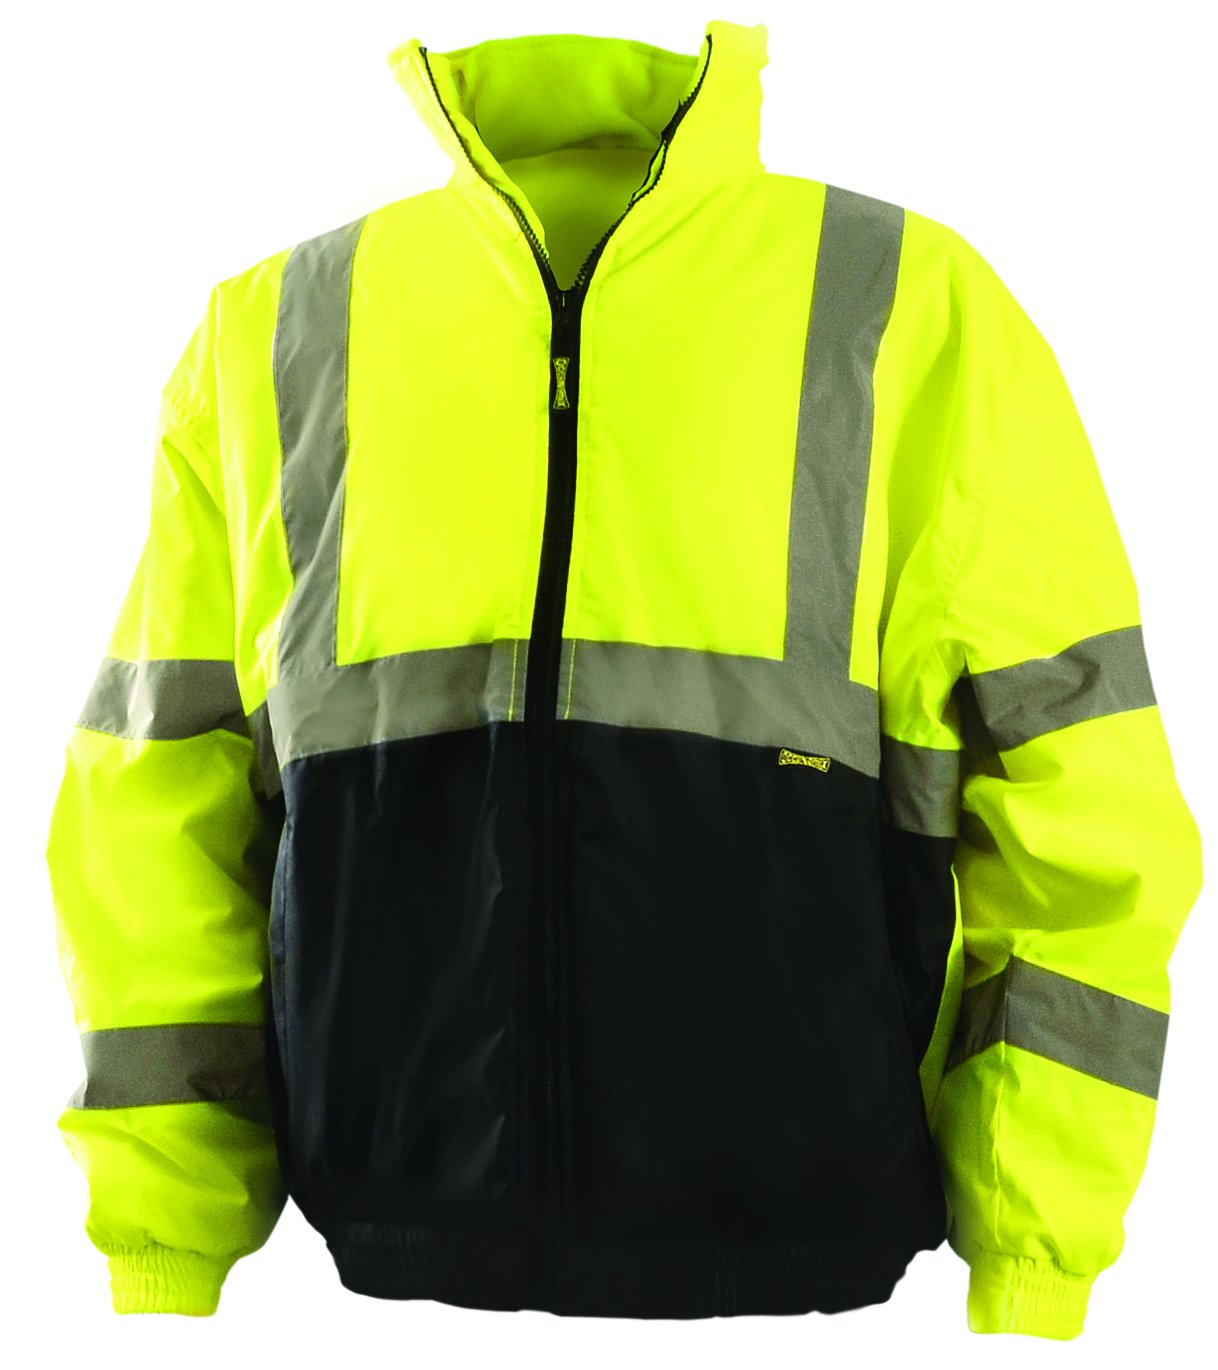 OccuNomix LUX-250-JB-BY2X High Visibility Quilted Black Bottom Bomber Jacket with 2 Front Pockets, Class 3, 100% ANSI Polyester, 2X-Large, Yellow